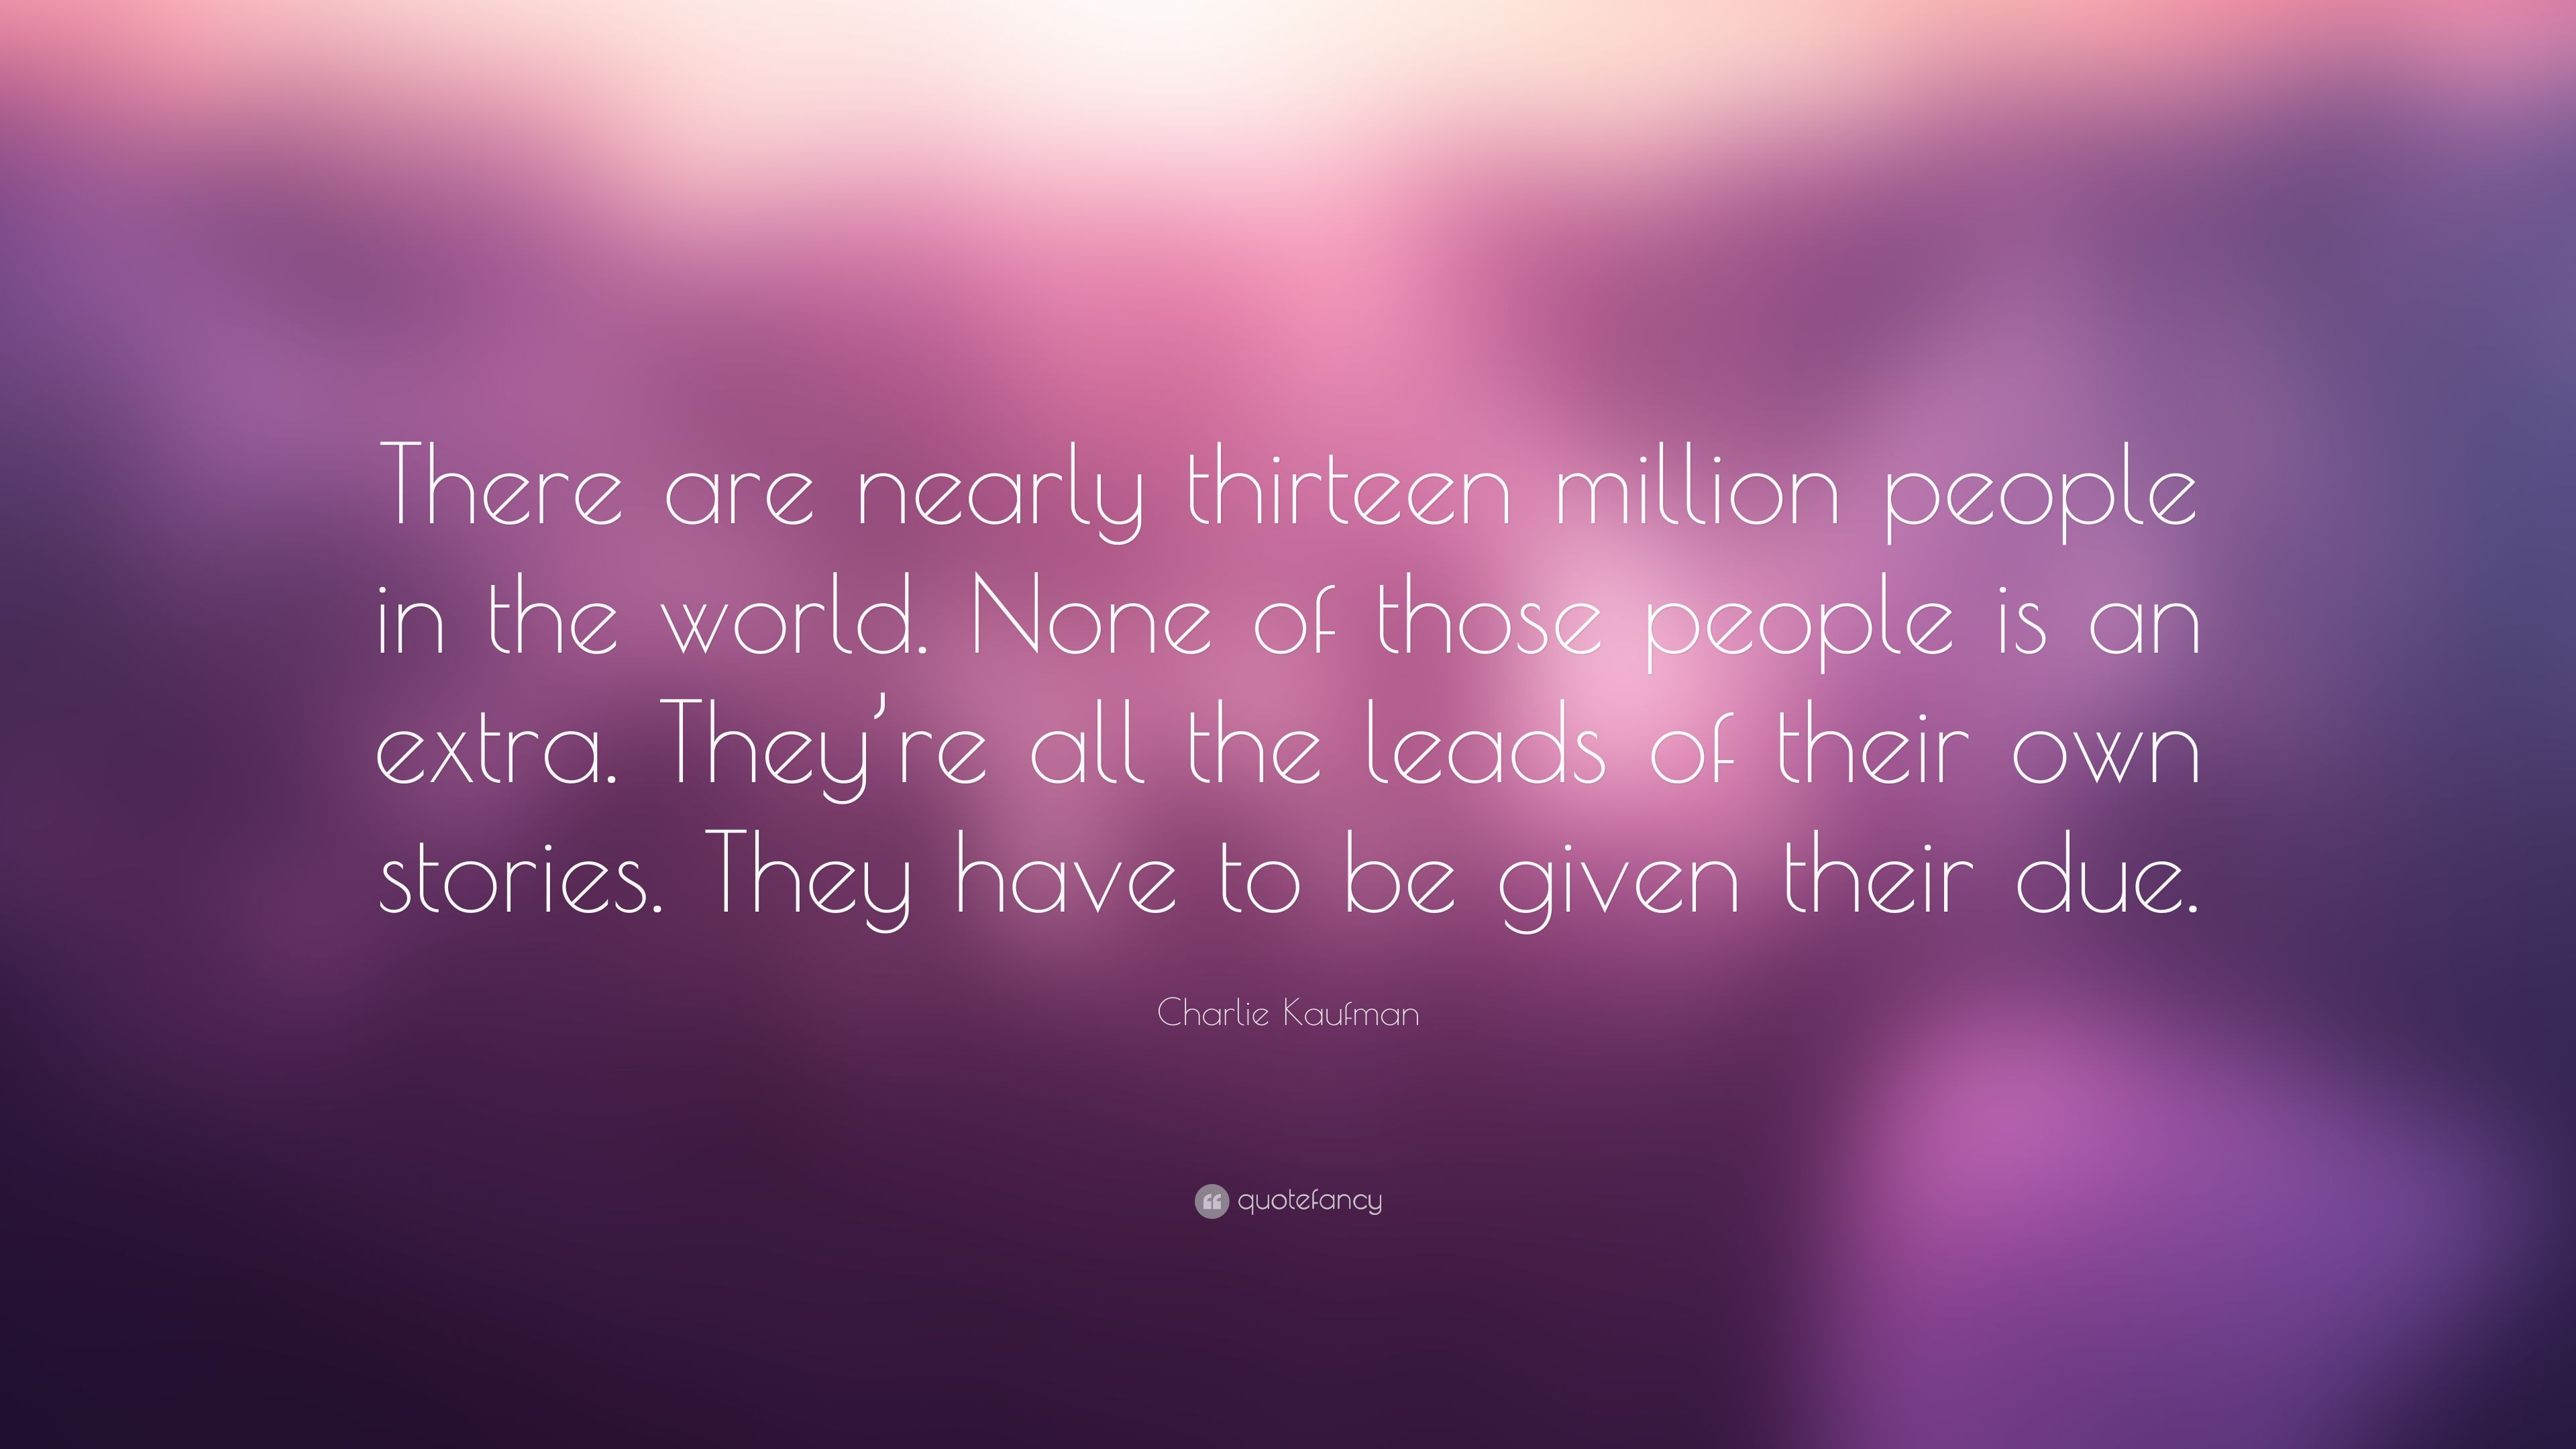 charlie kaufman quote there are nearly thirteen million people in the world none of those people is an extra they re all the leads of their 7 wallpapers quotefancy charlie kaufman quote there are